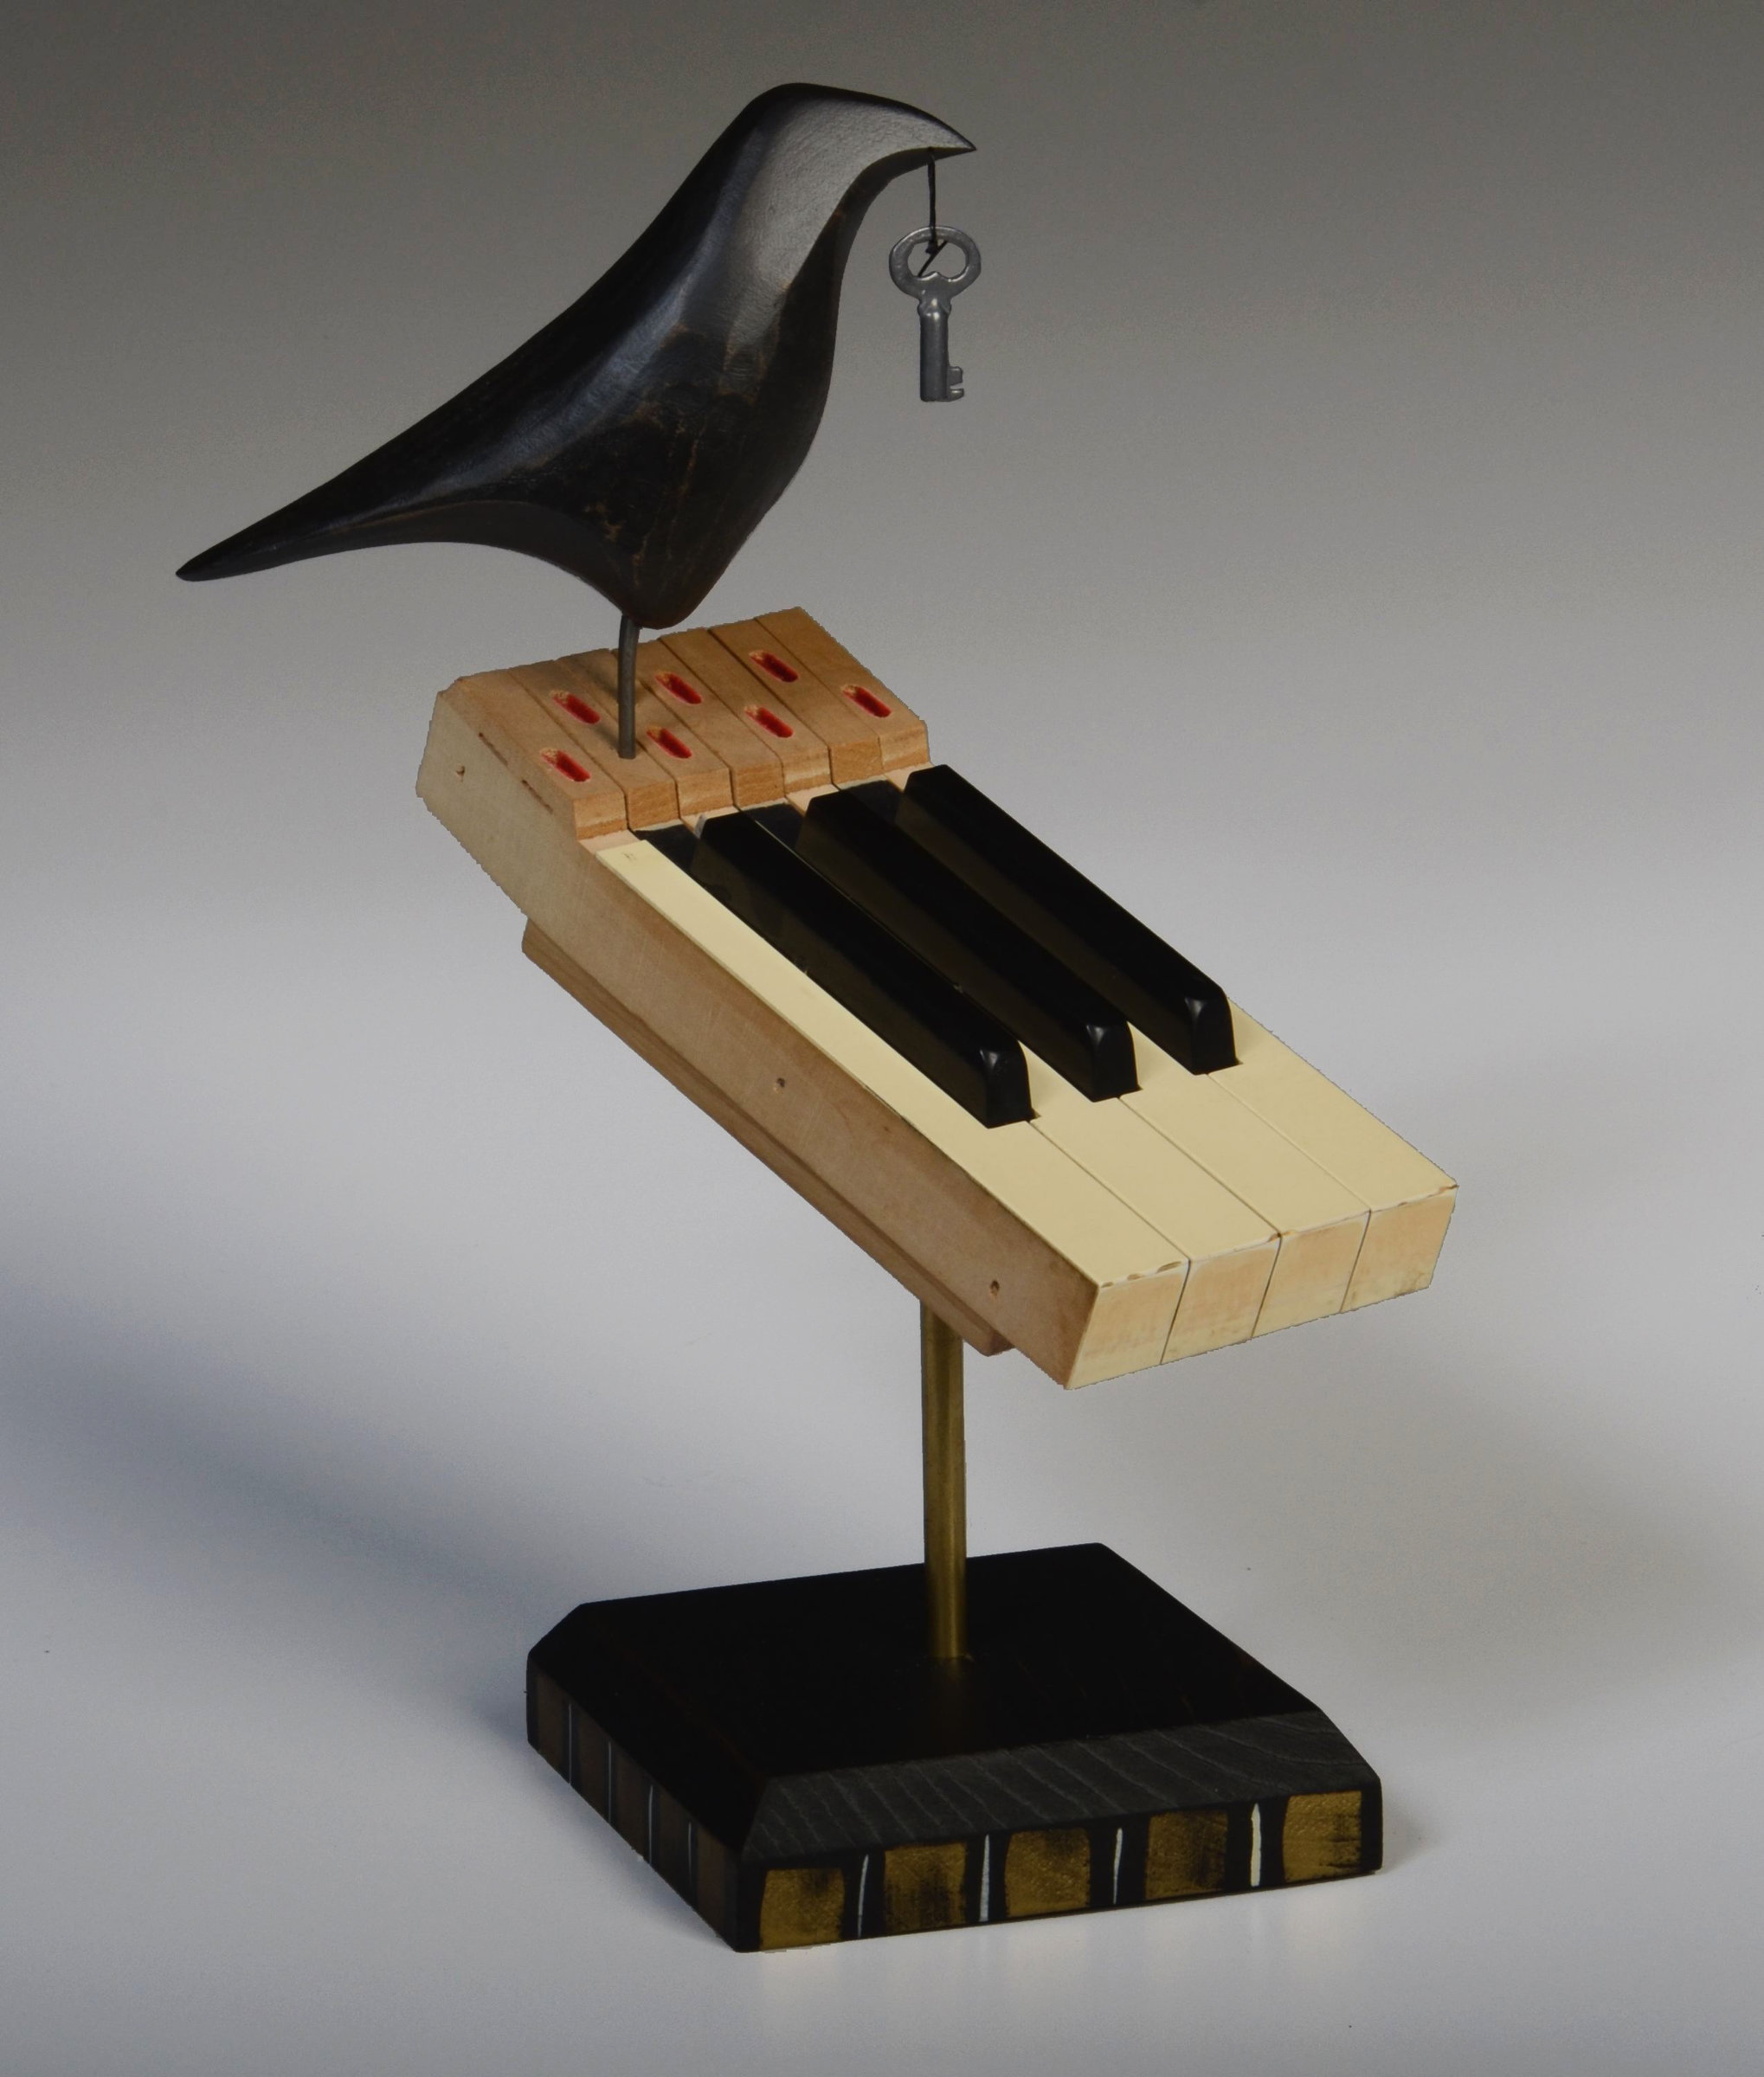 Artful Home Raven On Vintage Piano Keys By Mark Orr Wood Sculpture Artful Home